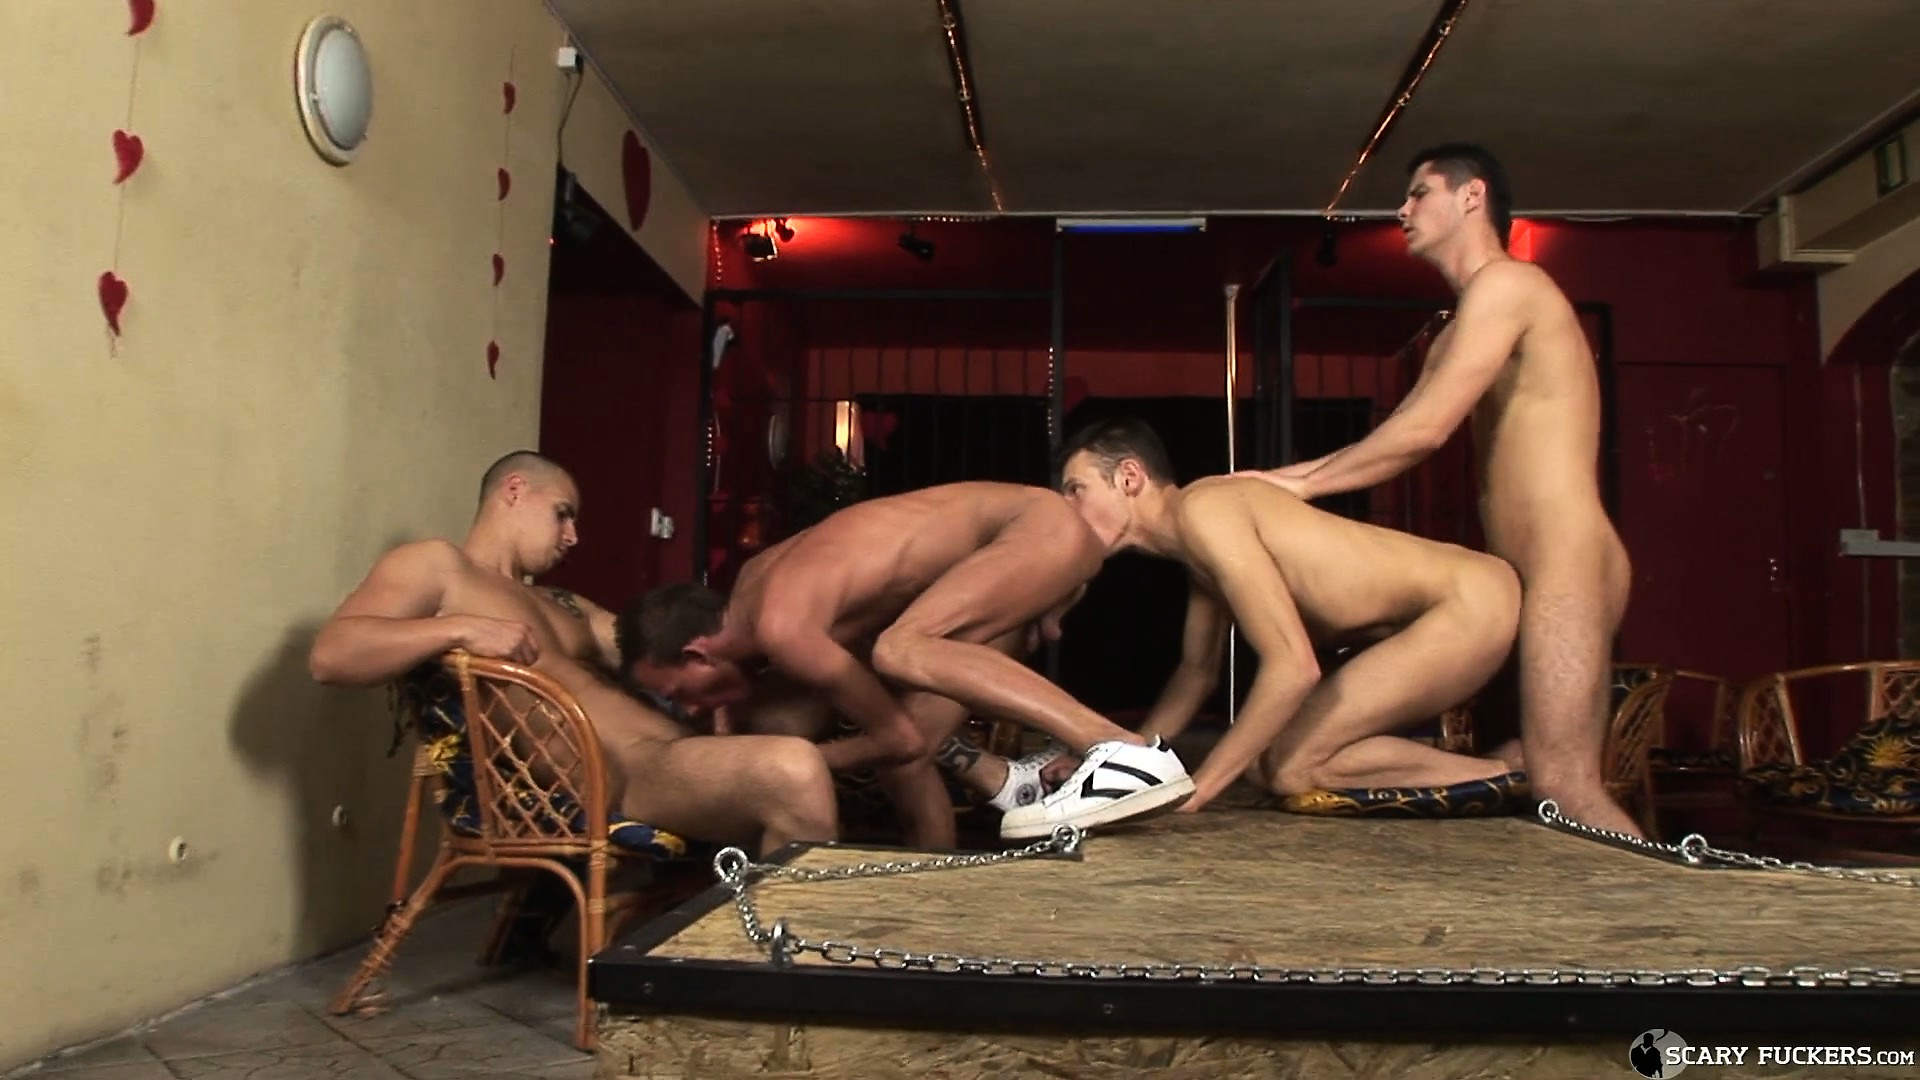 Porn Tube of The Four Guys Get Together And Please Each Other In A Wild And Creative Way